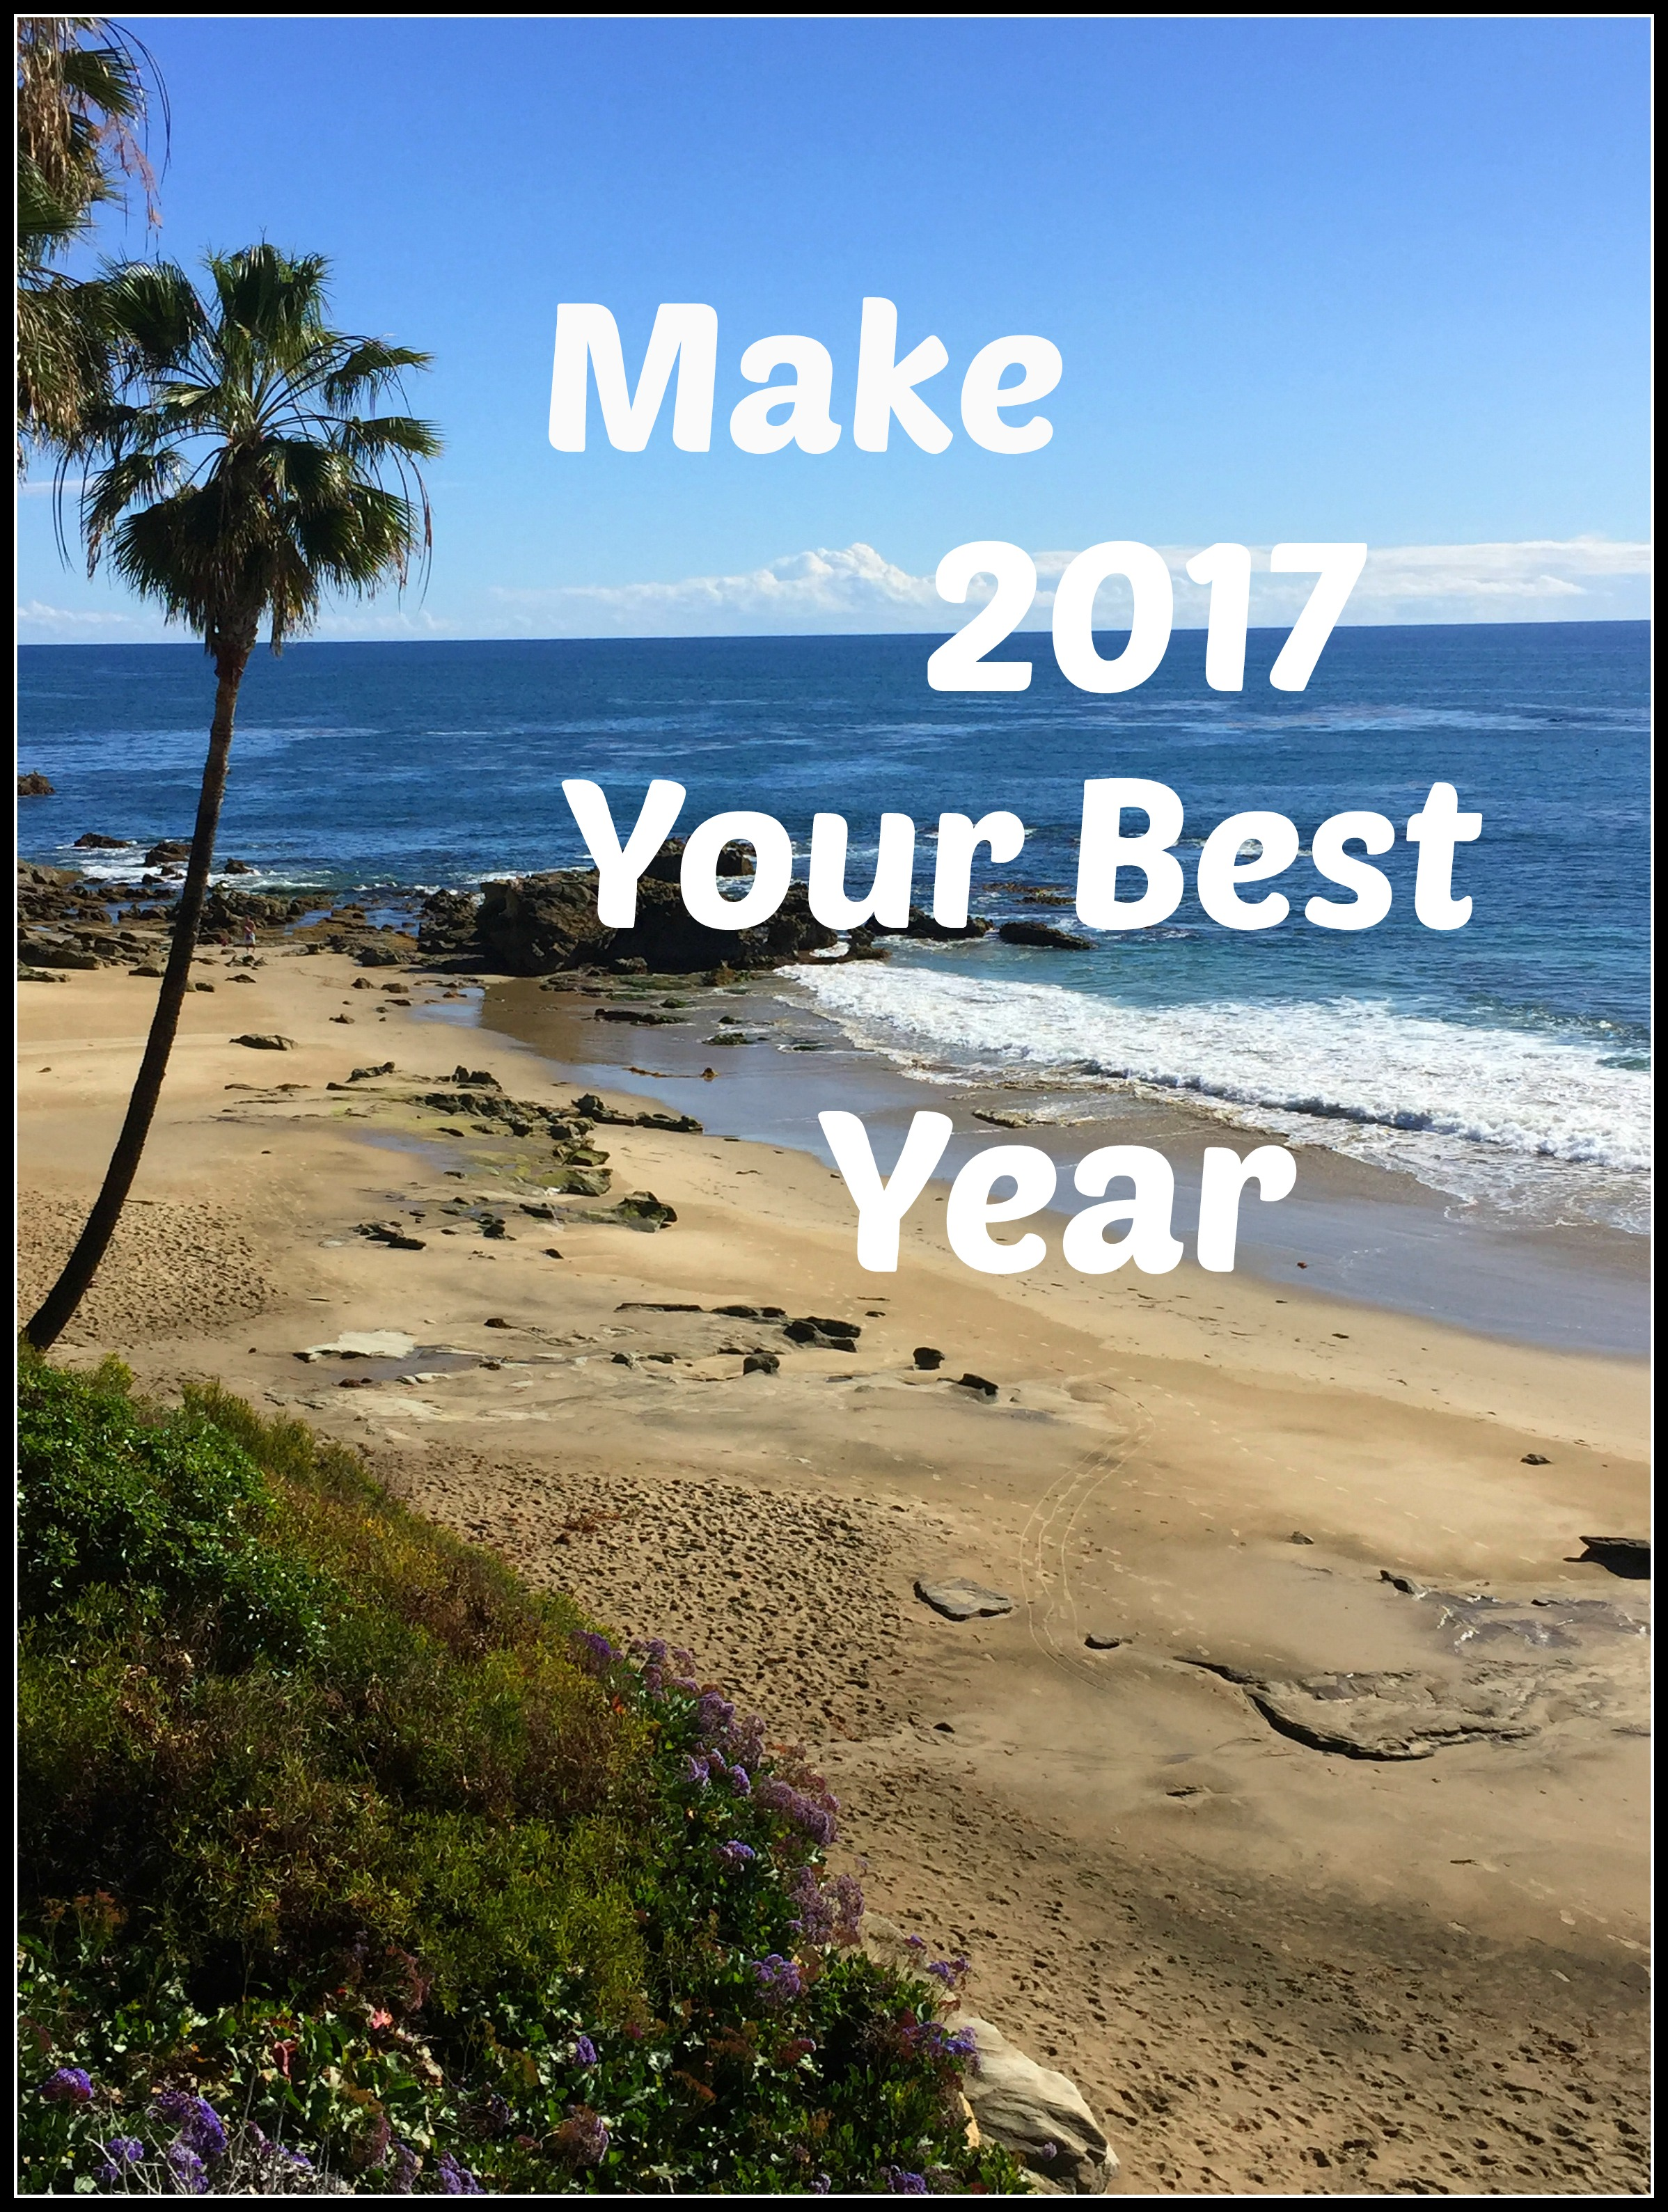 Make 2017 Your Best Year